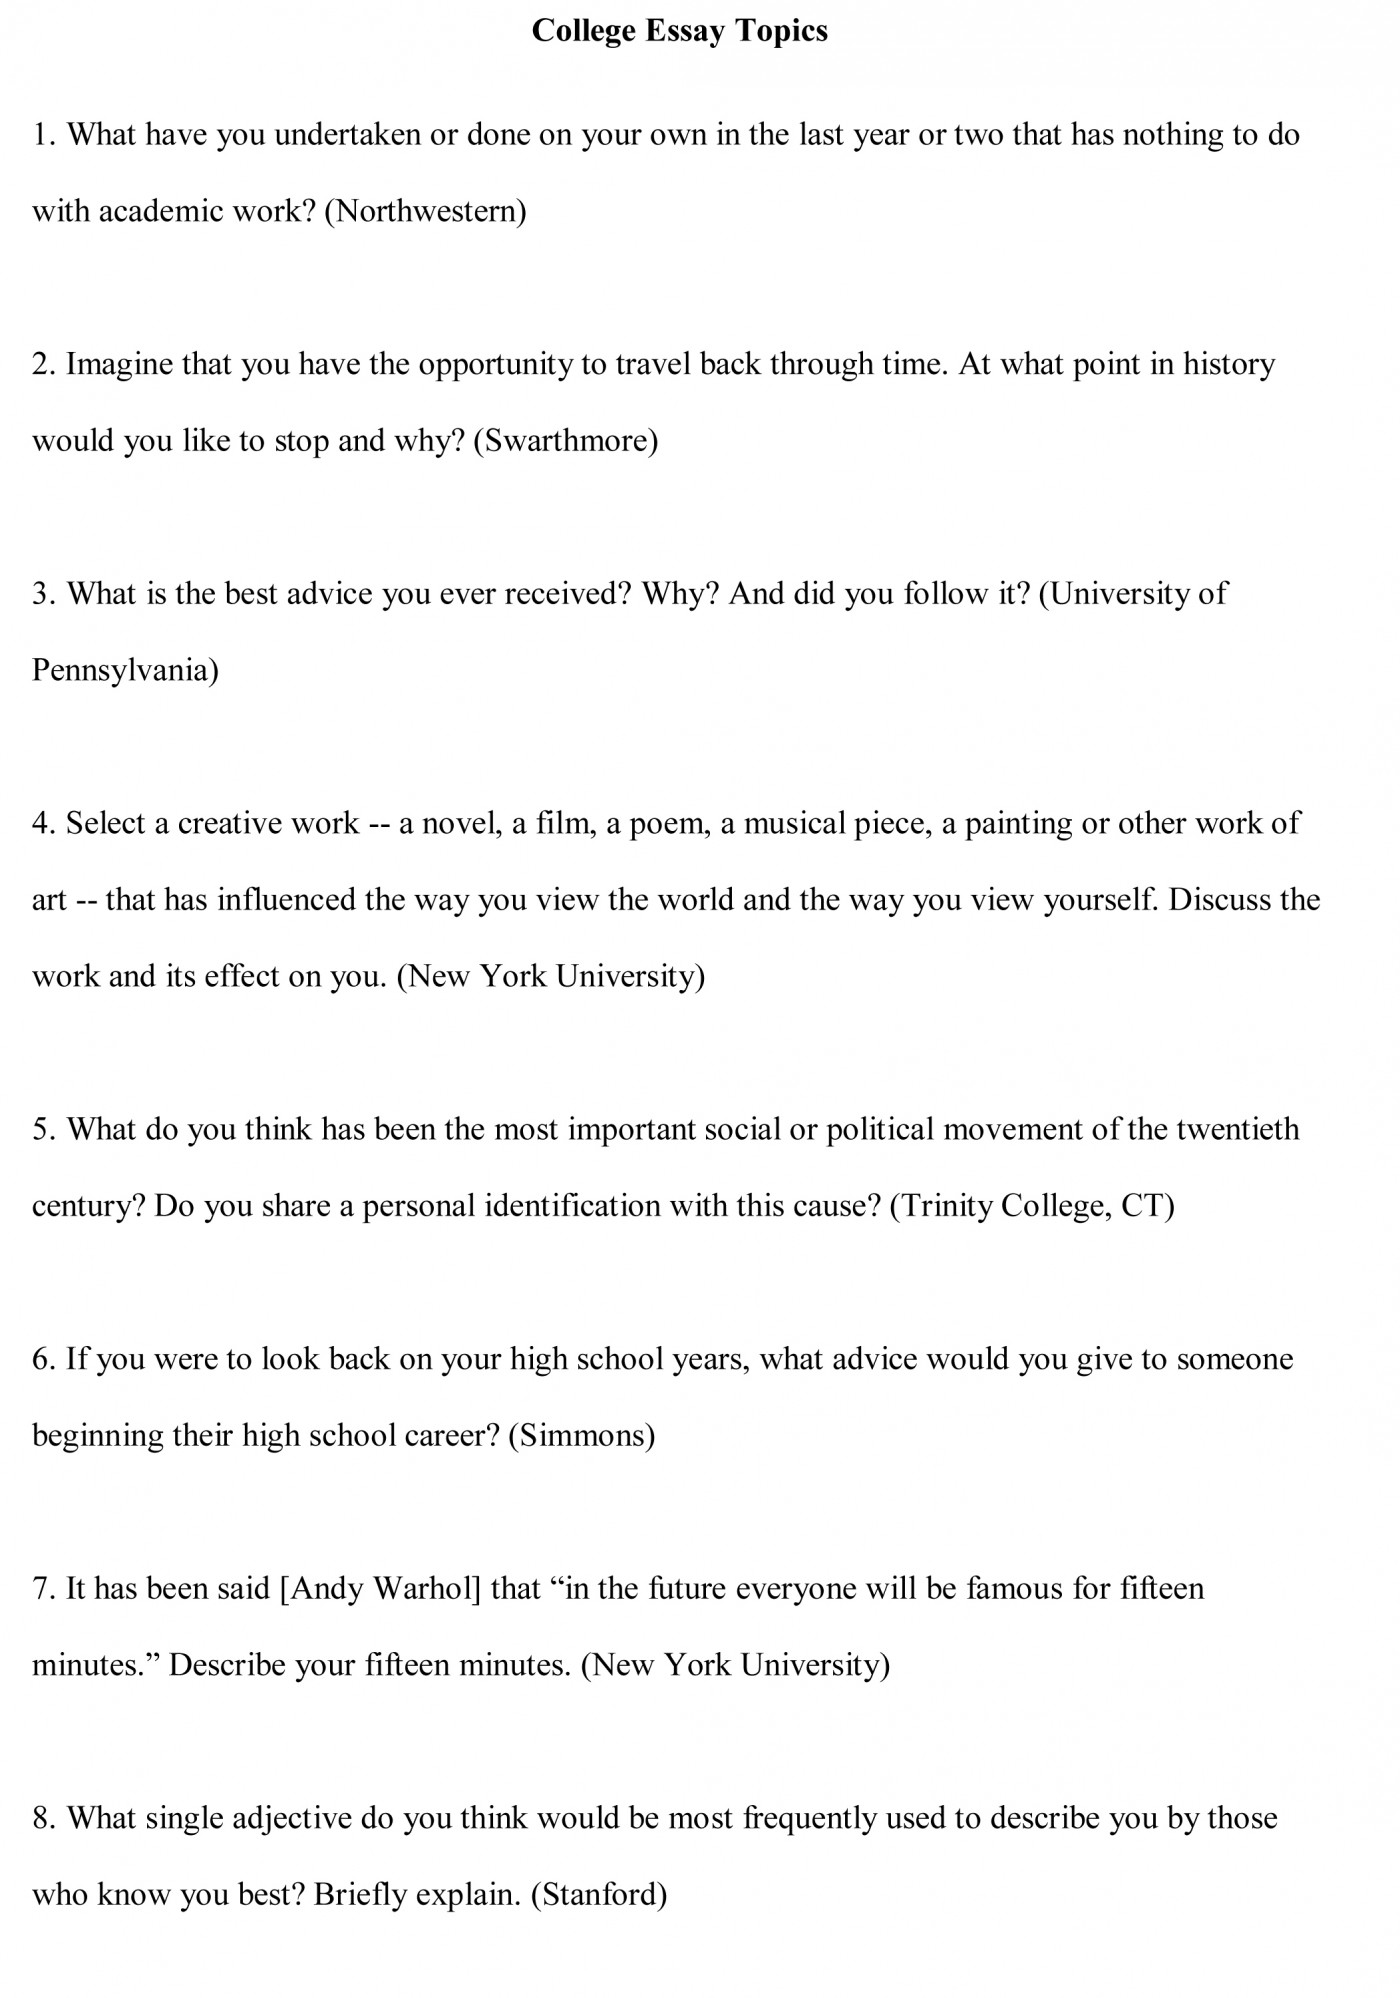 014 Essay Topics College Free Sample1 Archaicawful Writing For 6th Graders List Ielts Prompts 5th 1400